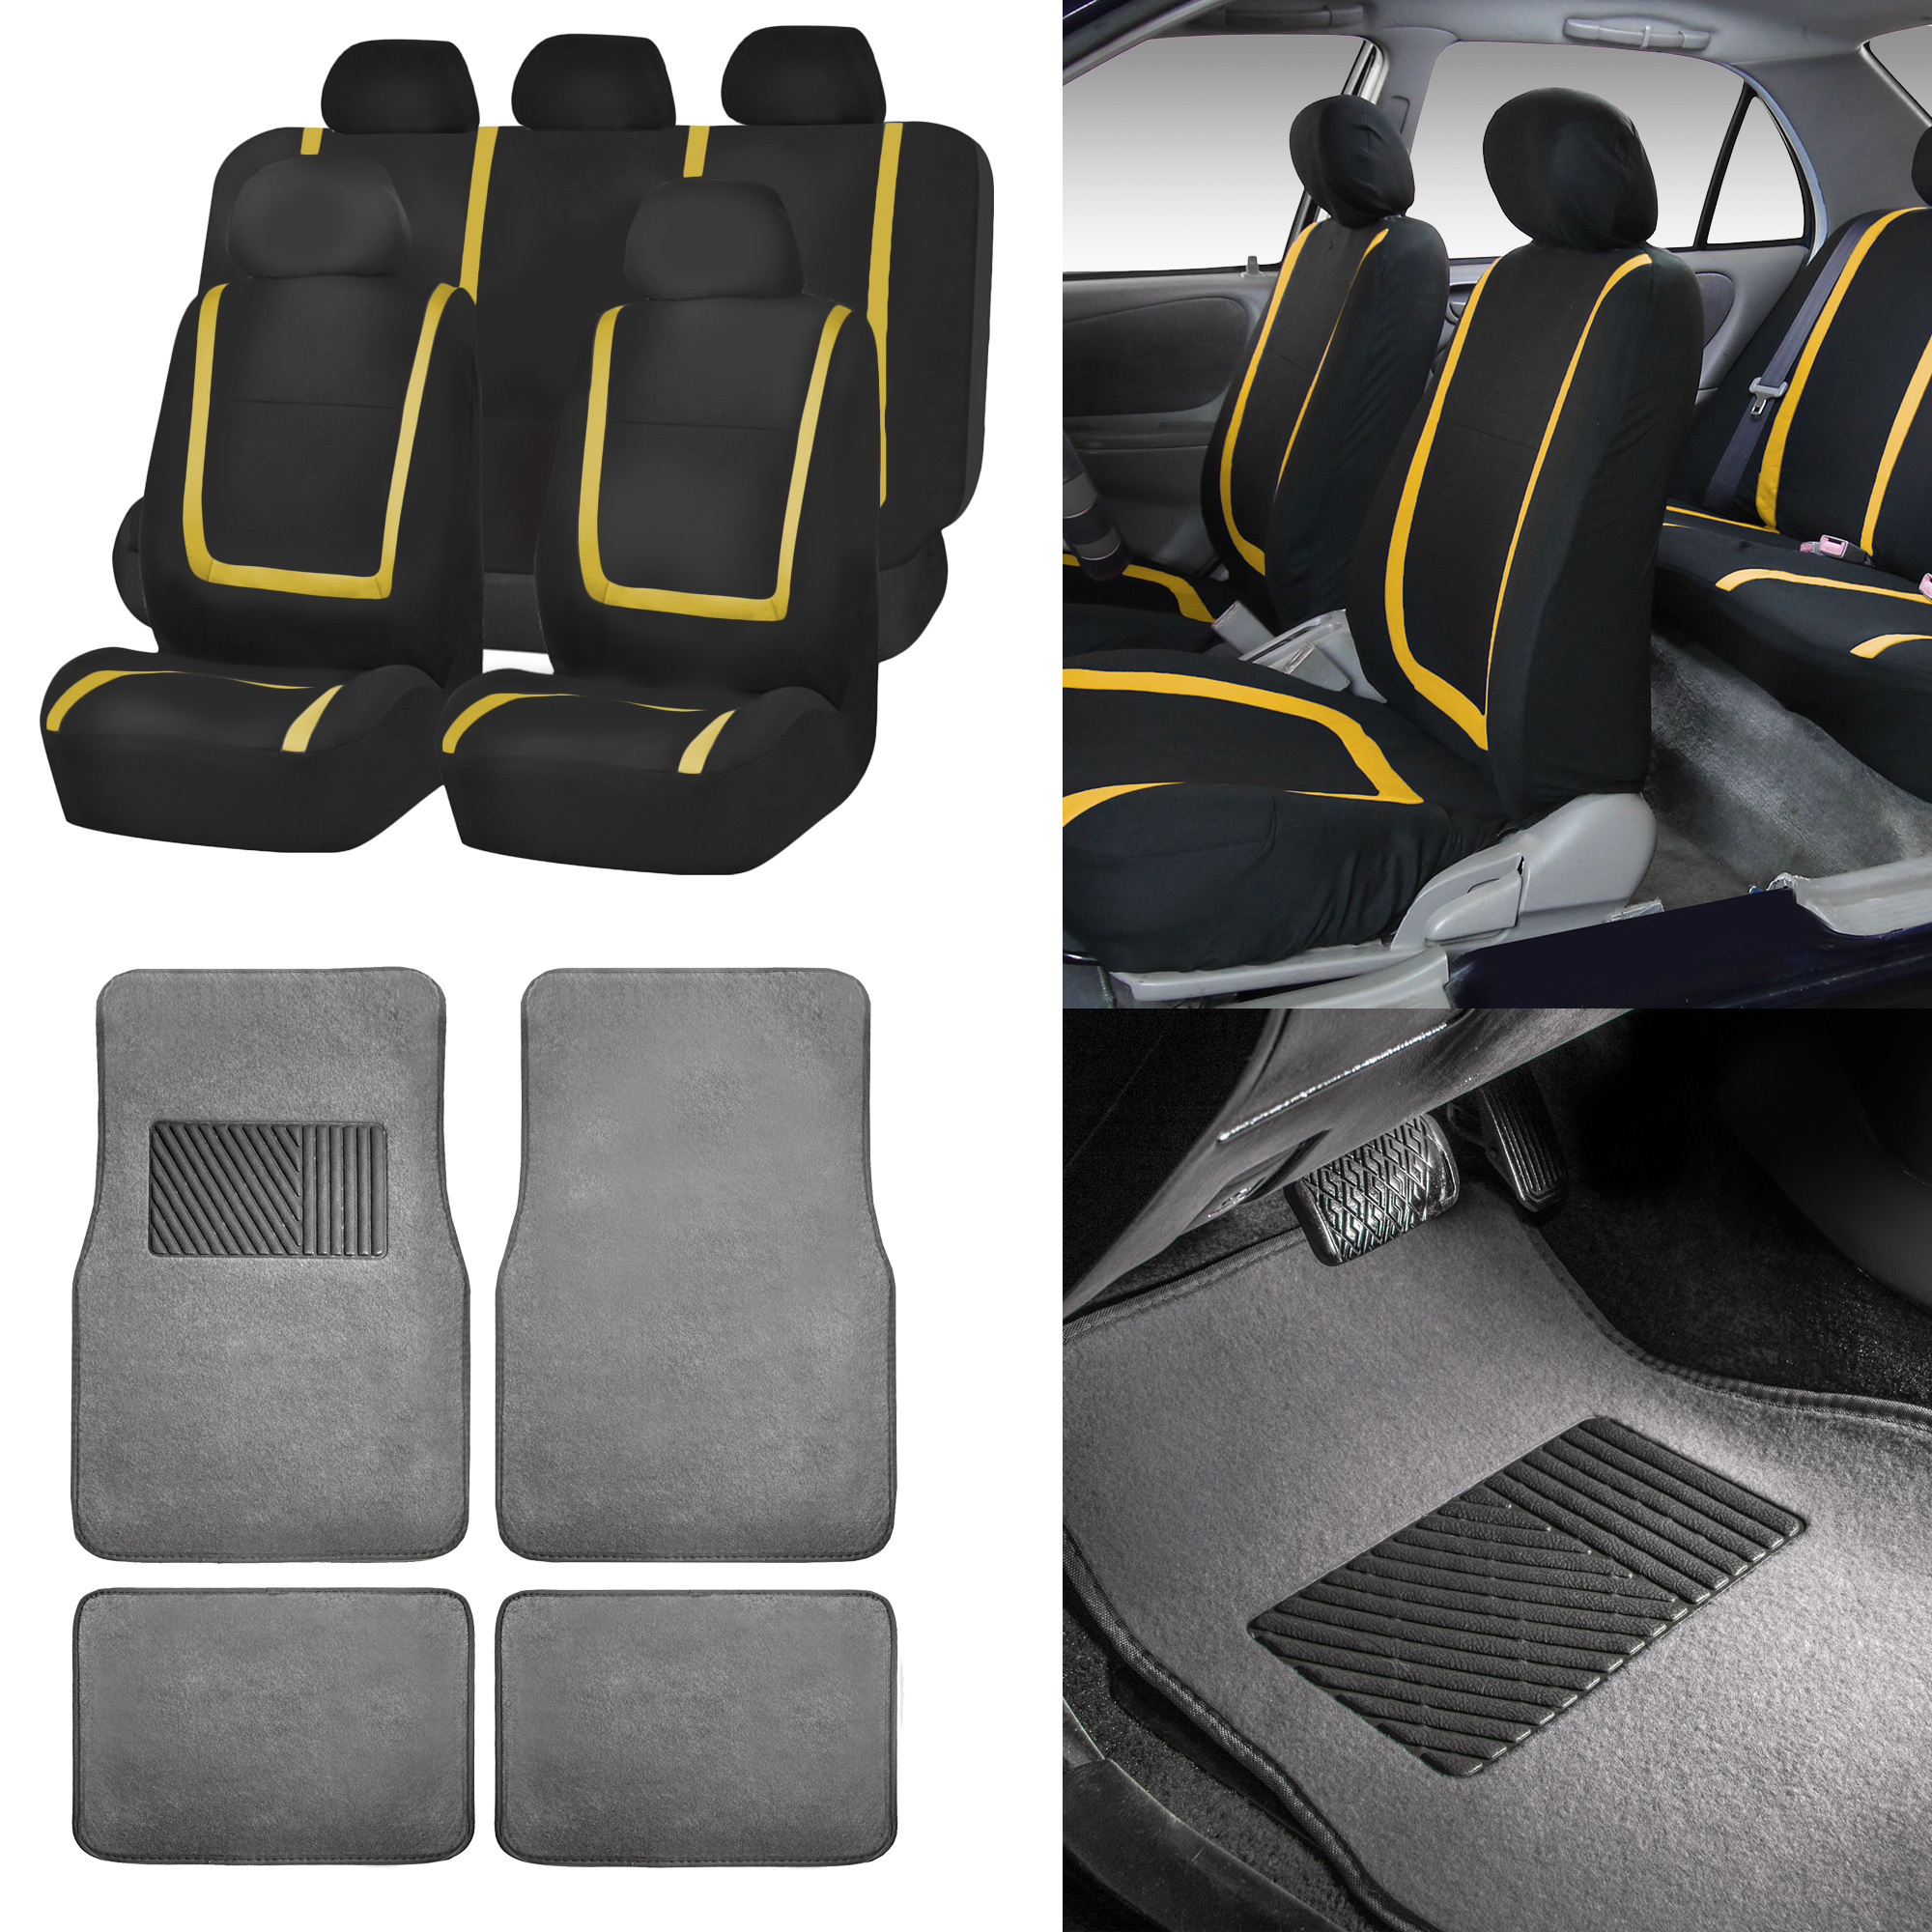 copy here mat text car products mats your latest lexus personalised premier